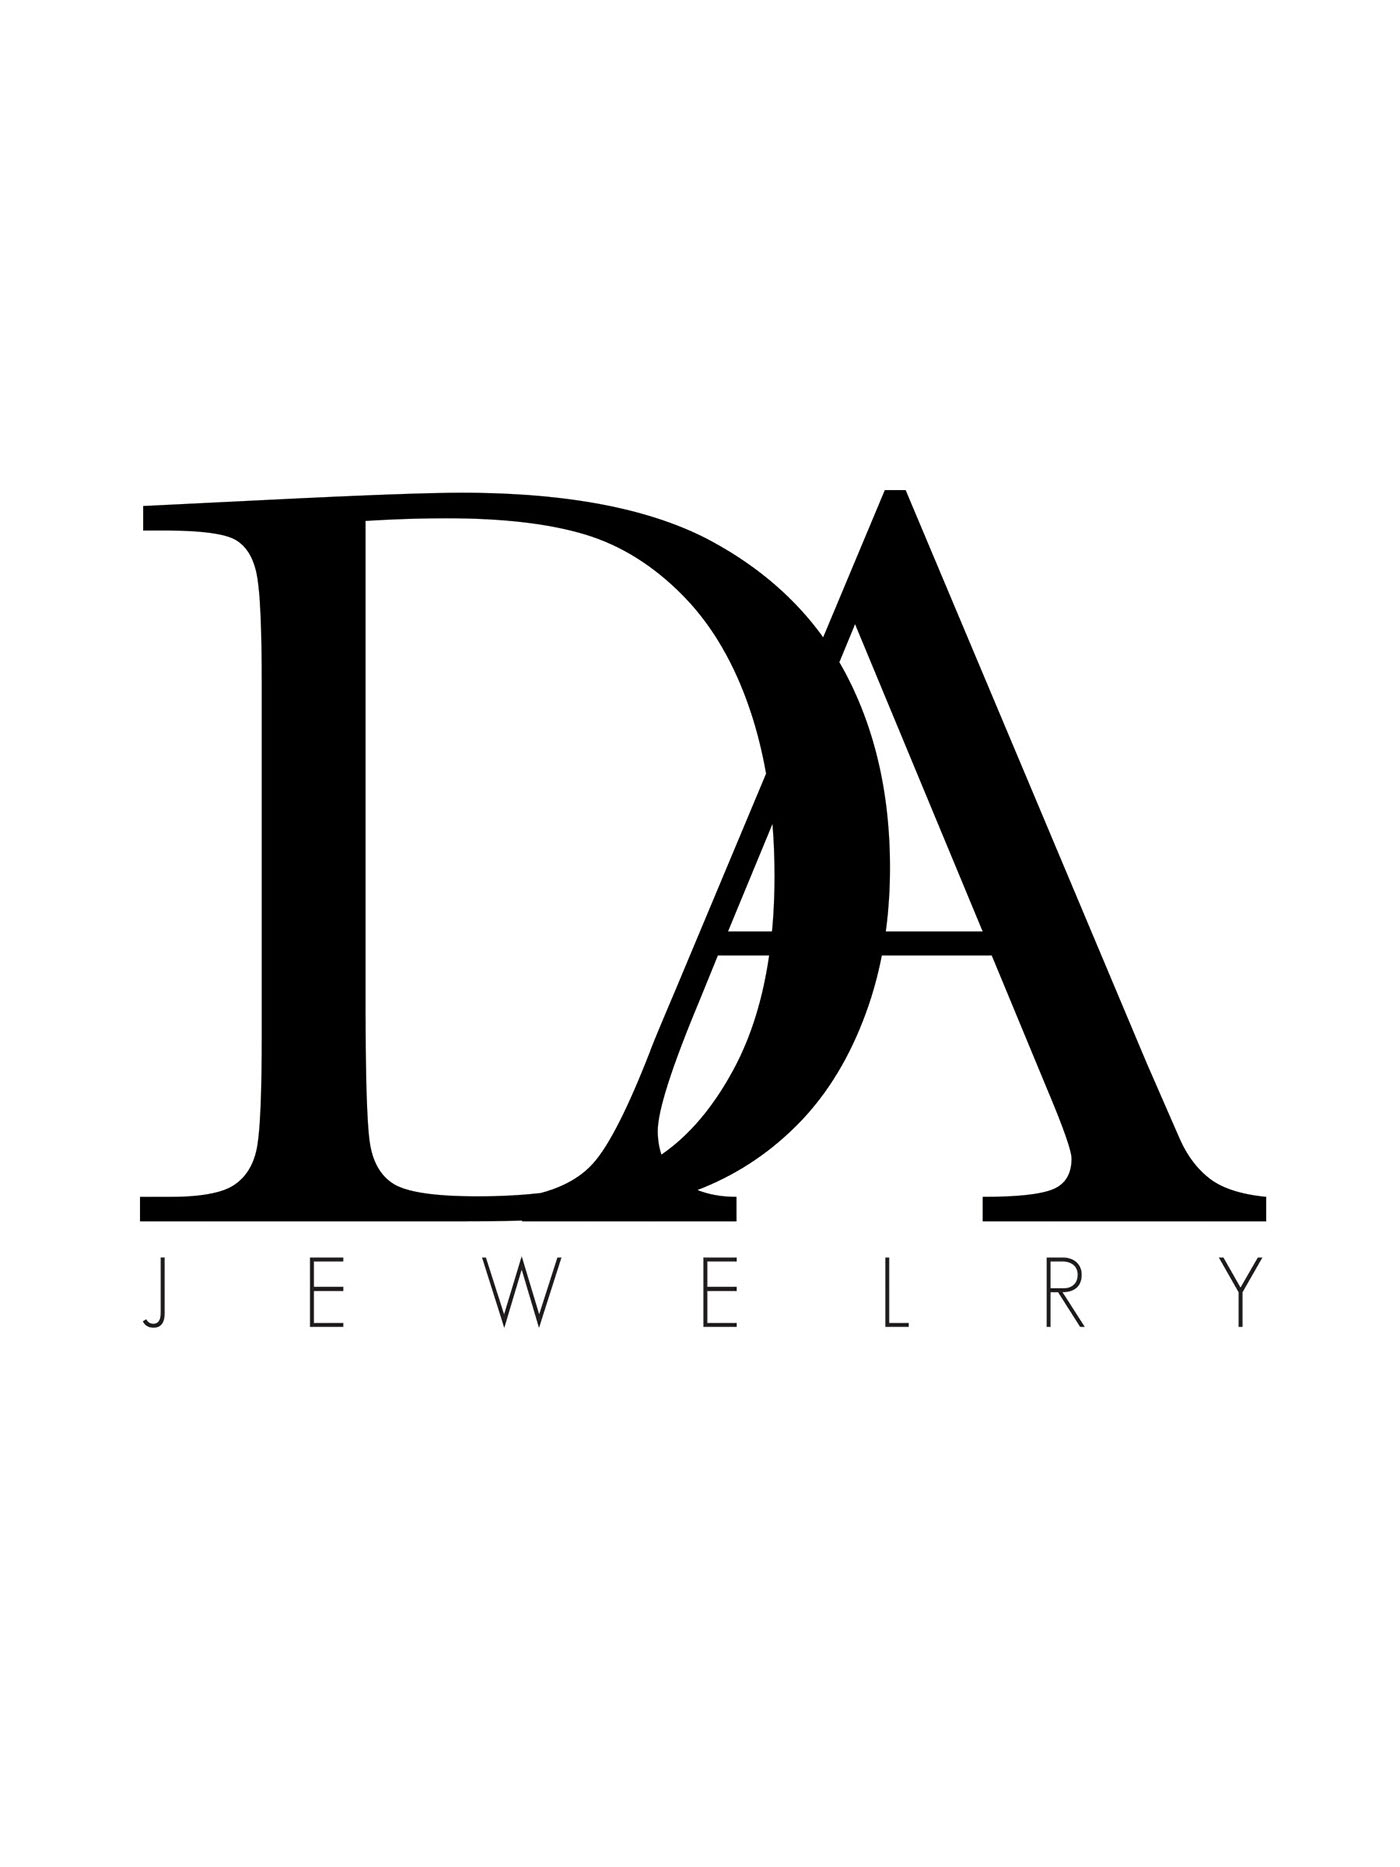 Donna Avida Jewelry on Behance.